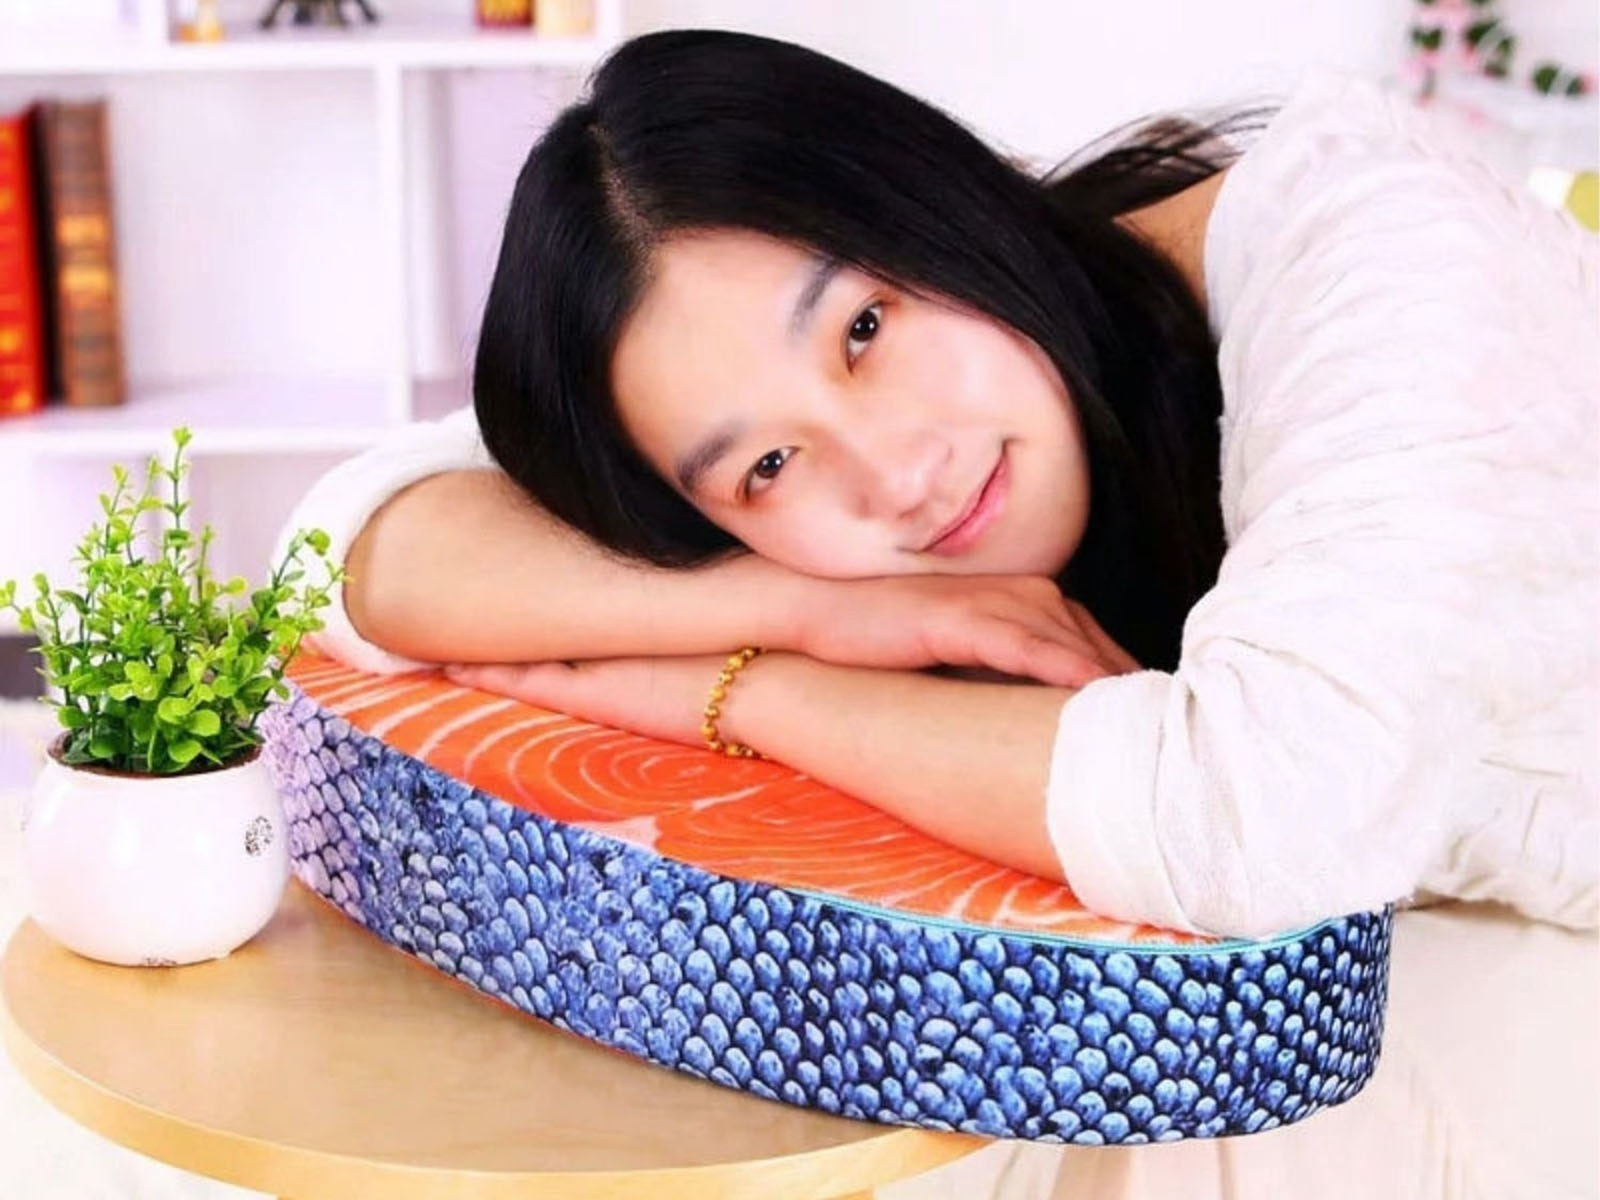 The weirdest (and most mouth-watering) pillow you'll ever own